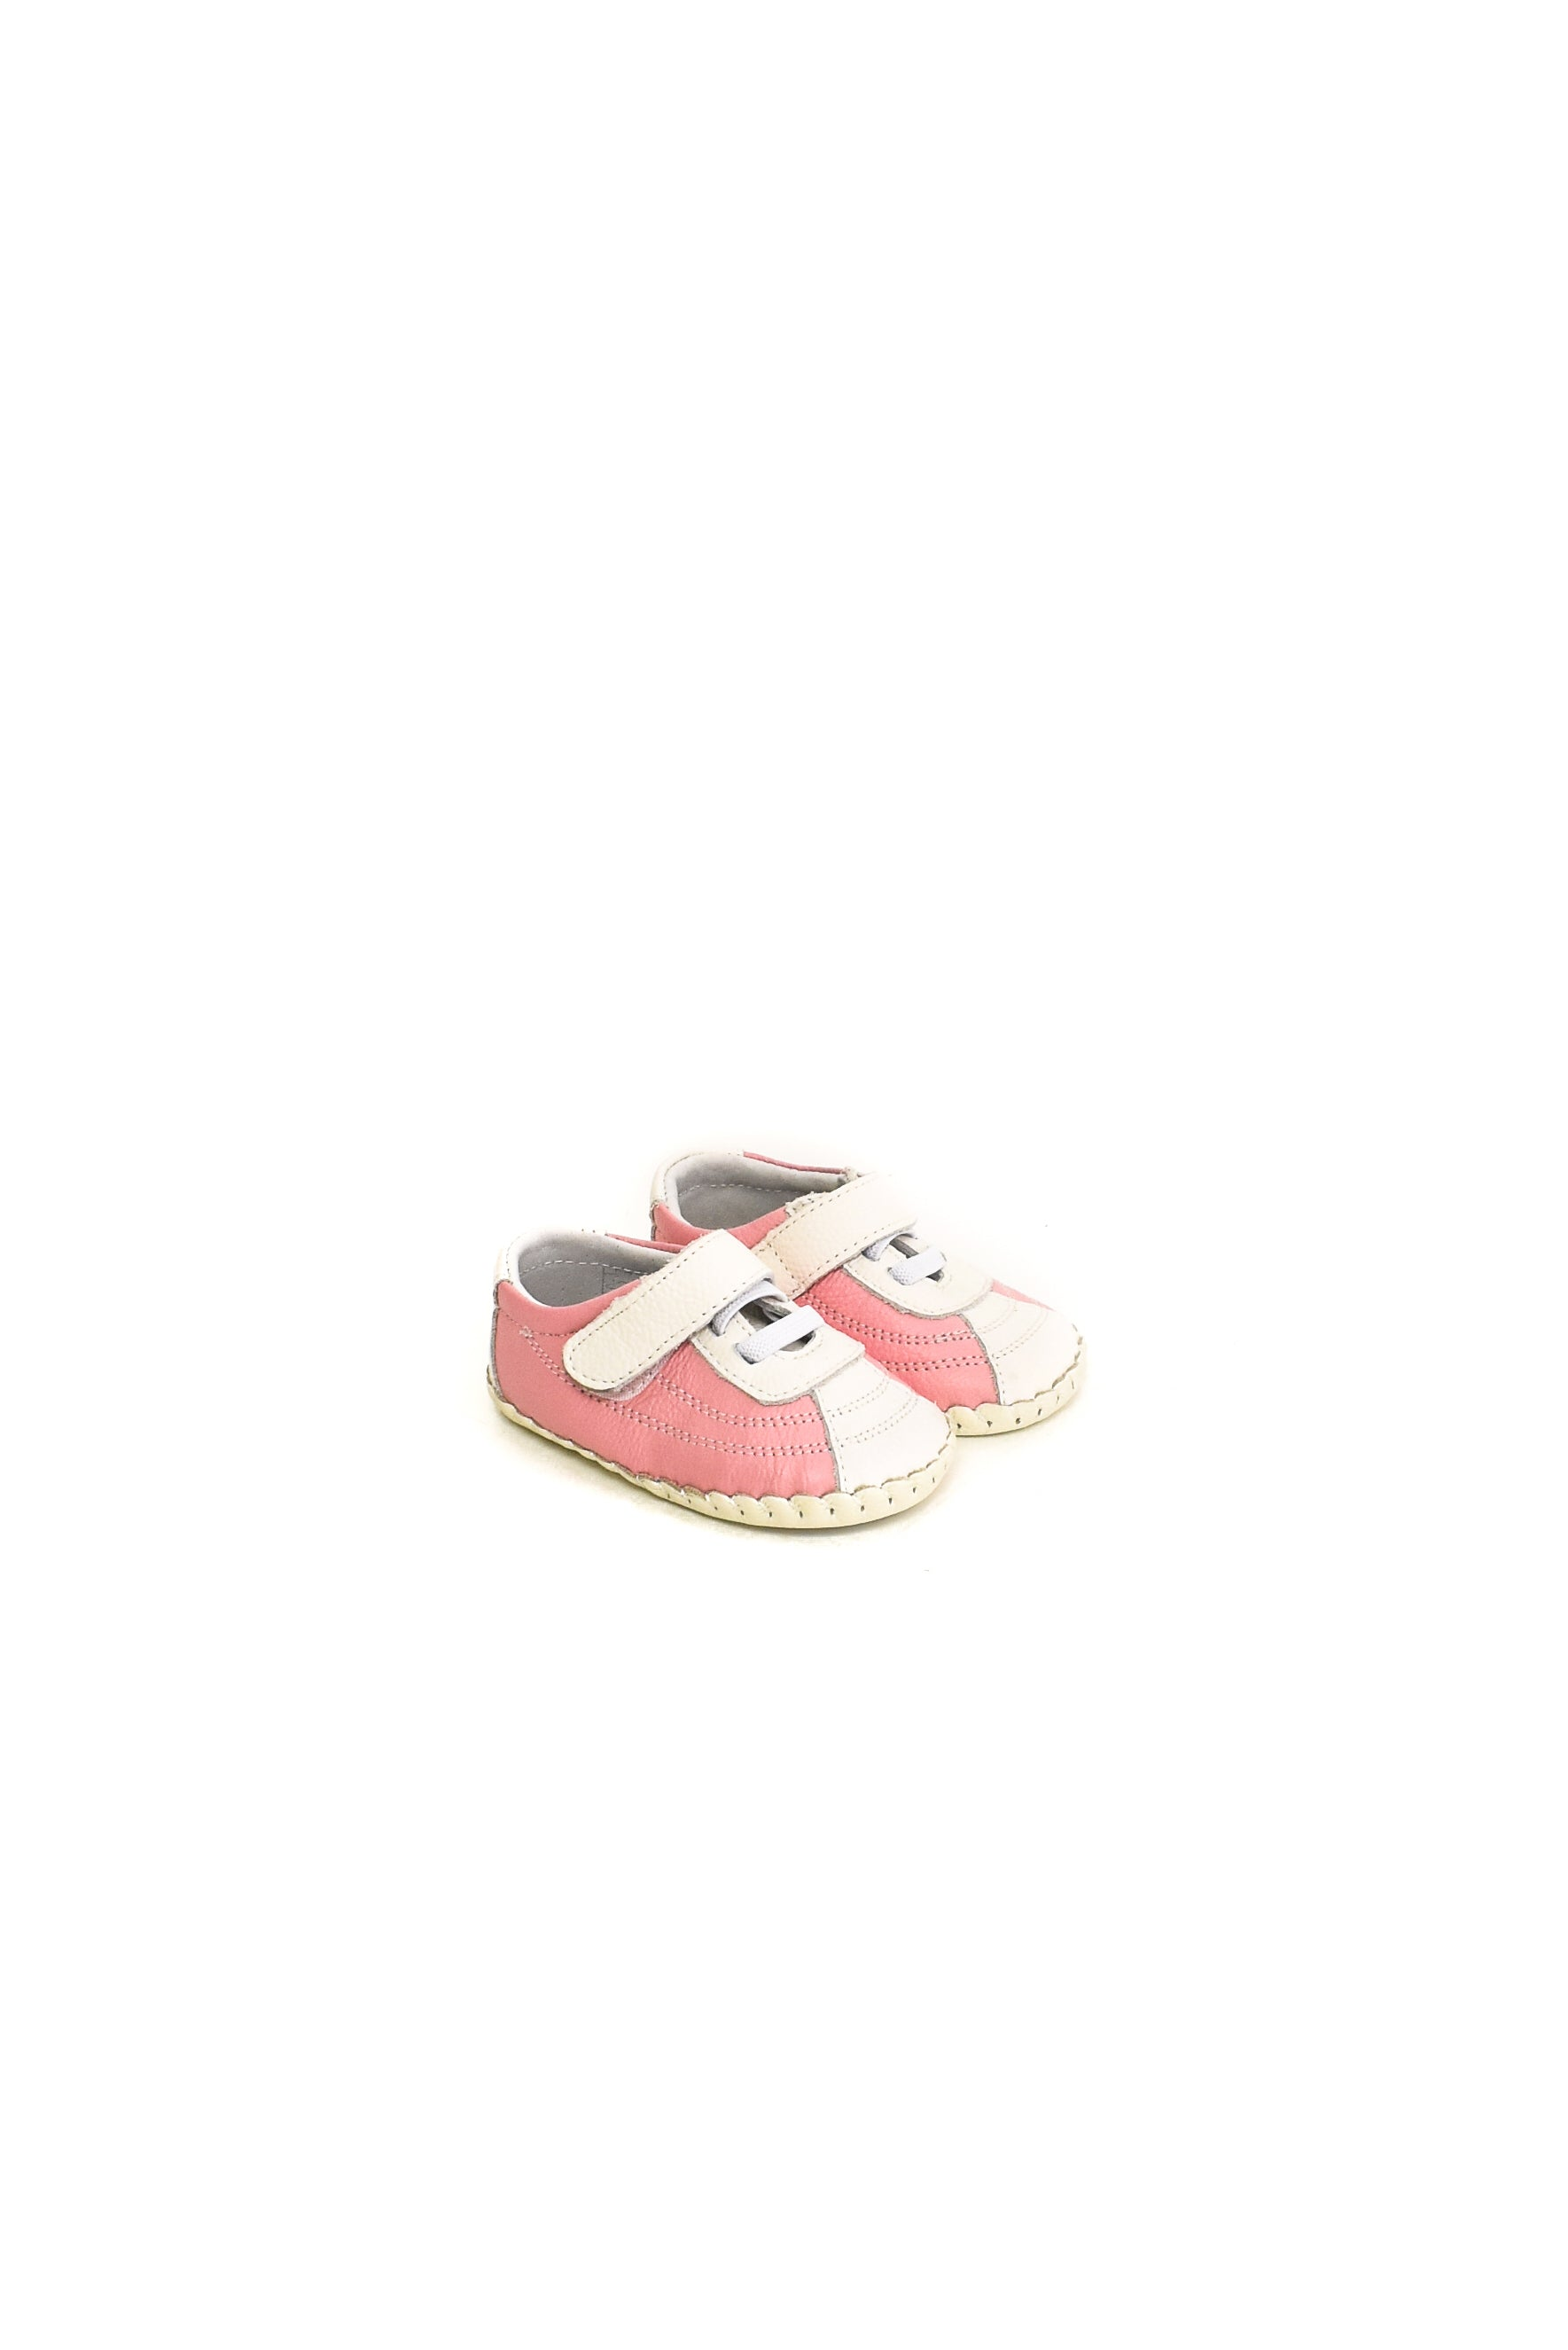 10007617 Pedies Baby~Shoes 6-12M at Retykle